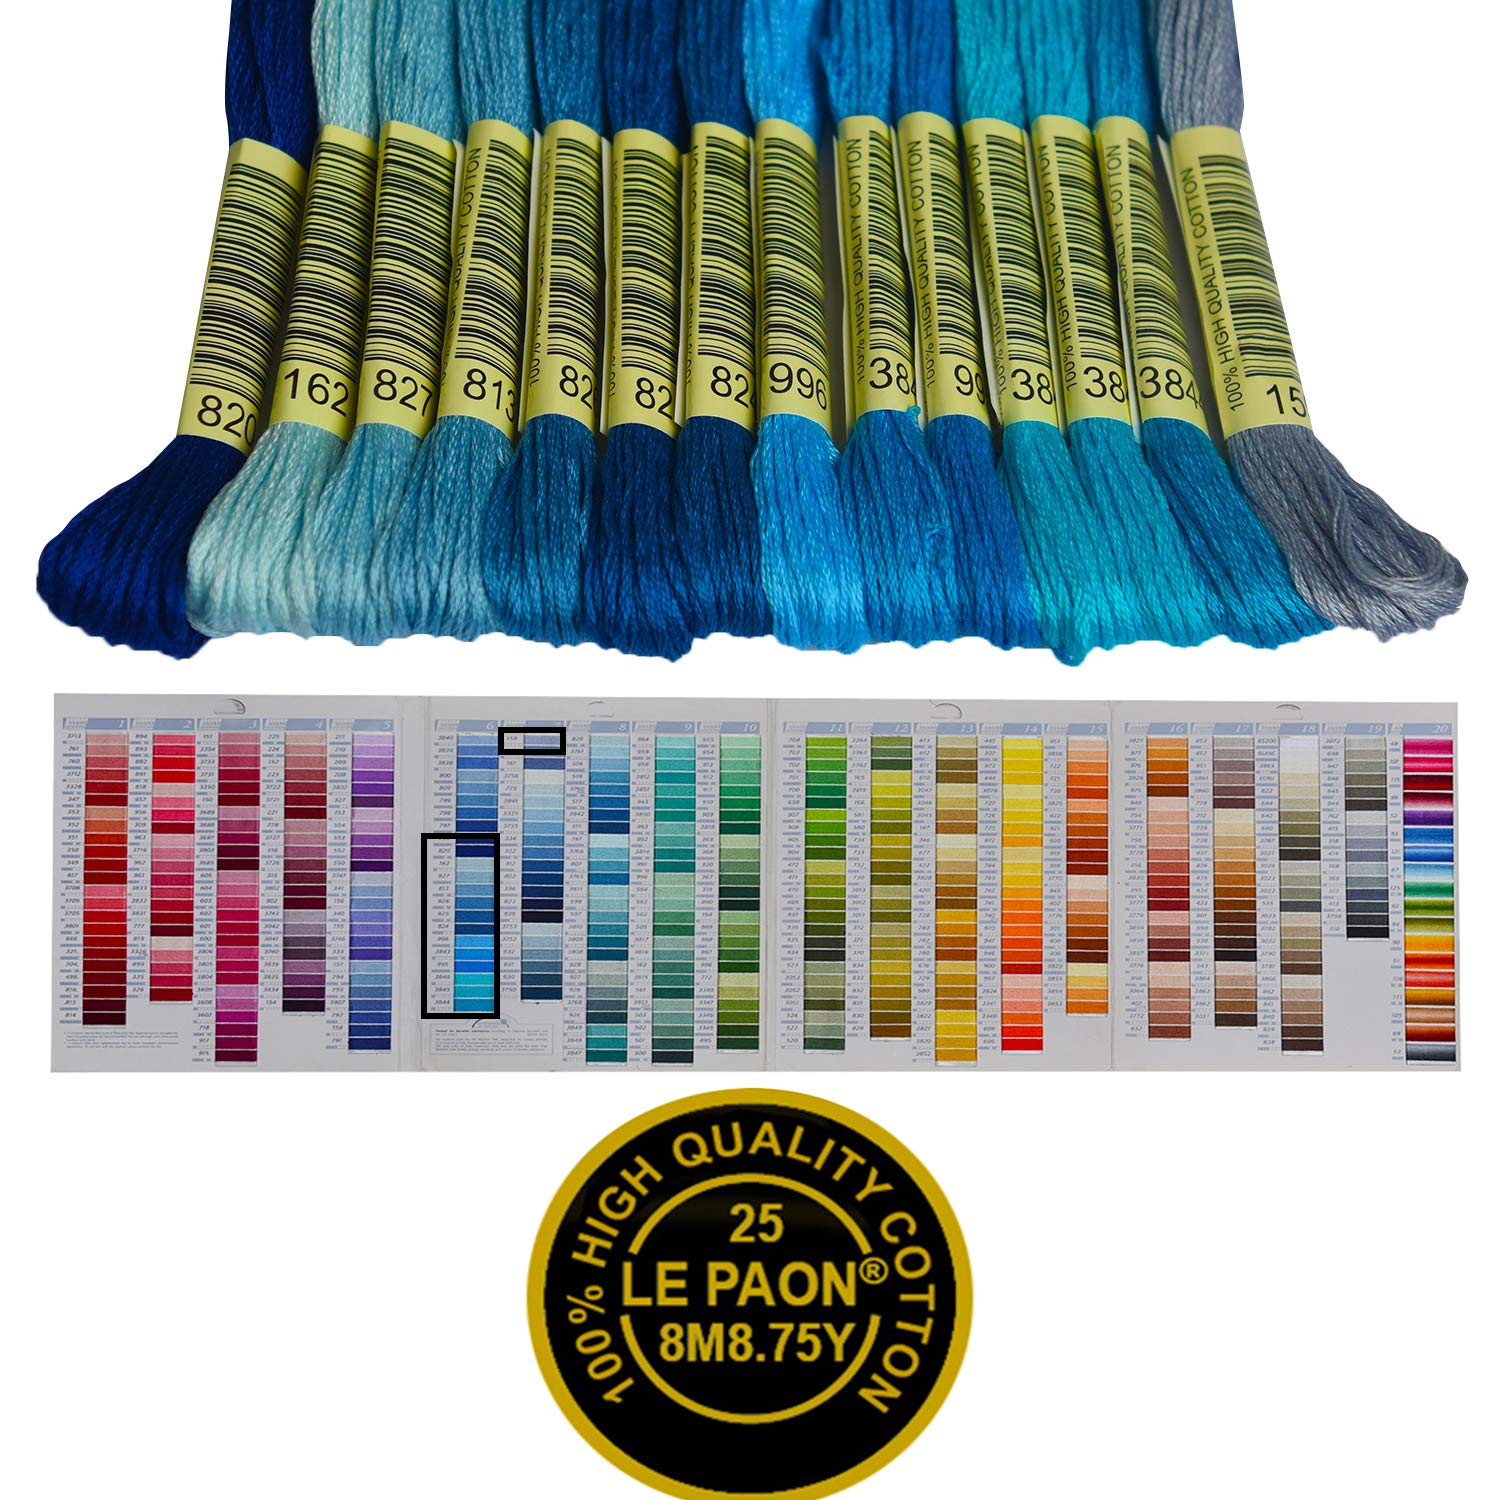 Crafts Floss Rainbow Color Cross Stitch Threads 50 Skeins Per Pack and Free Set of 11 Pcs Embroidery Tool Kits Friendship Bracelets Floss Embroidery Floss